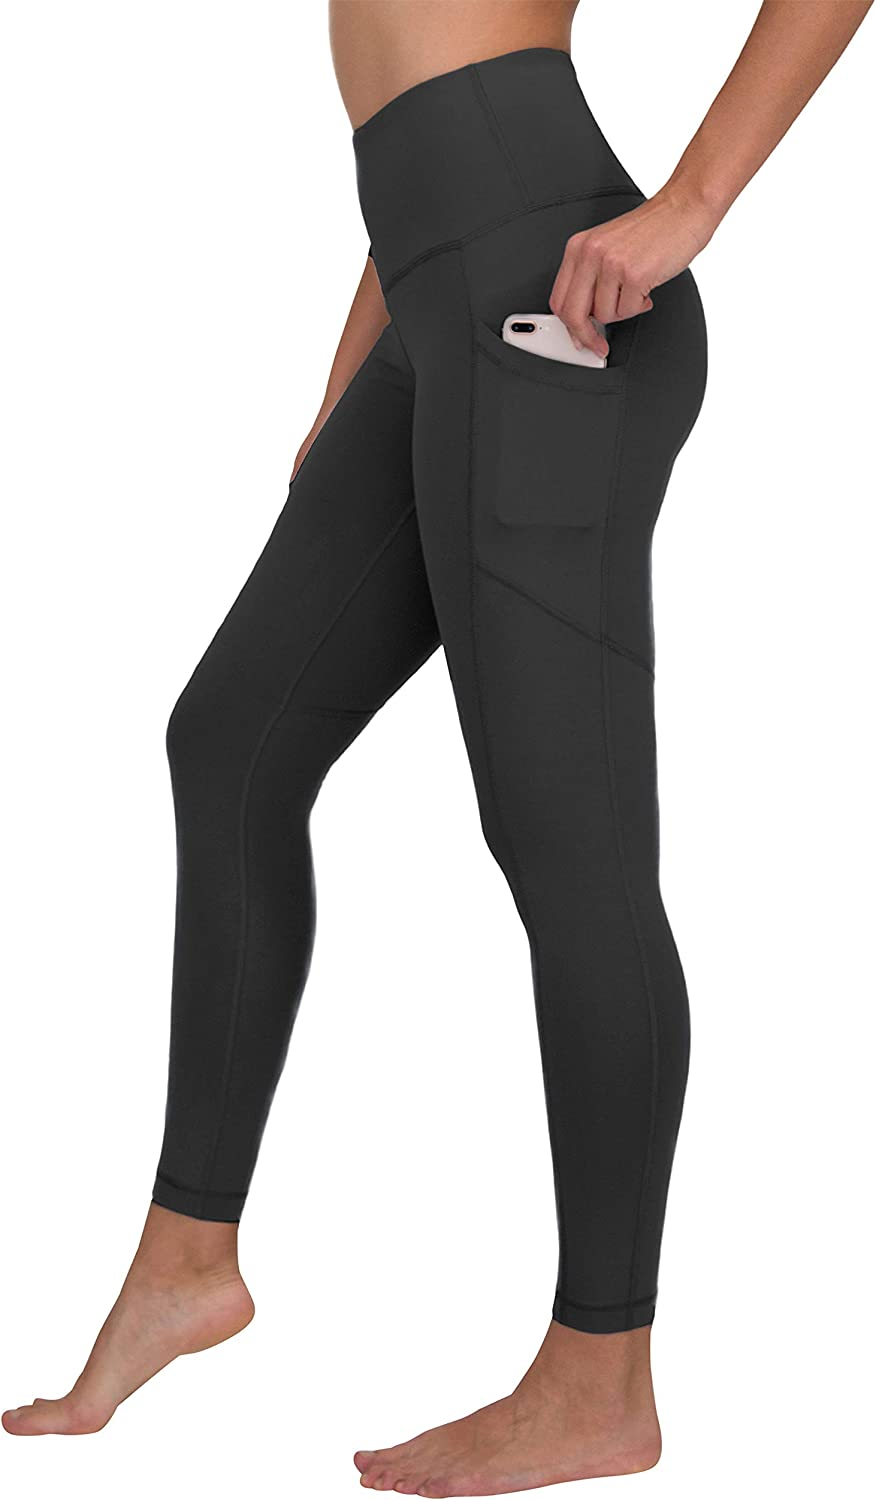 90 Degree By Reflex Womens Power Flex Yoga Pants: Clothing